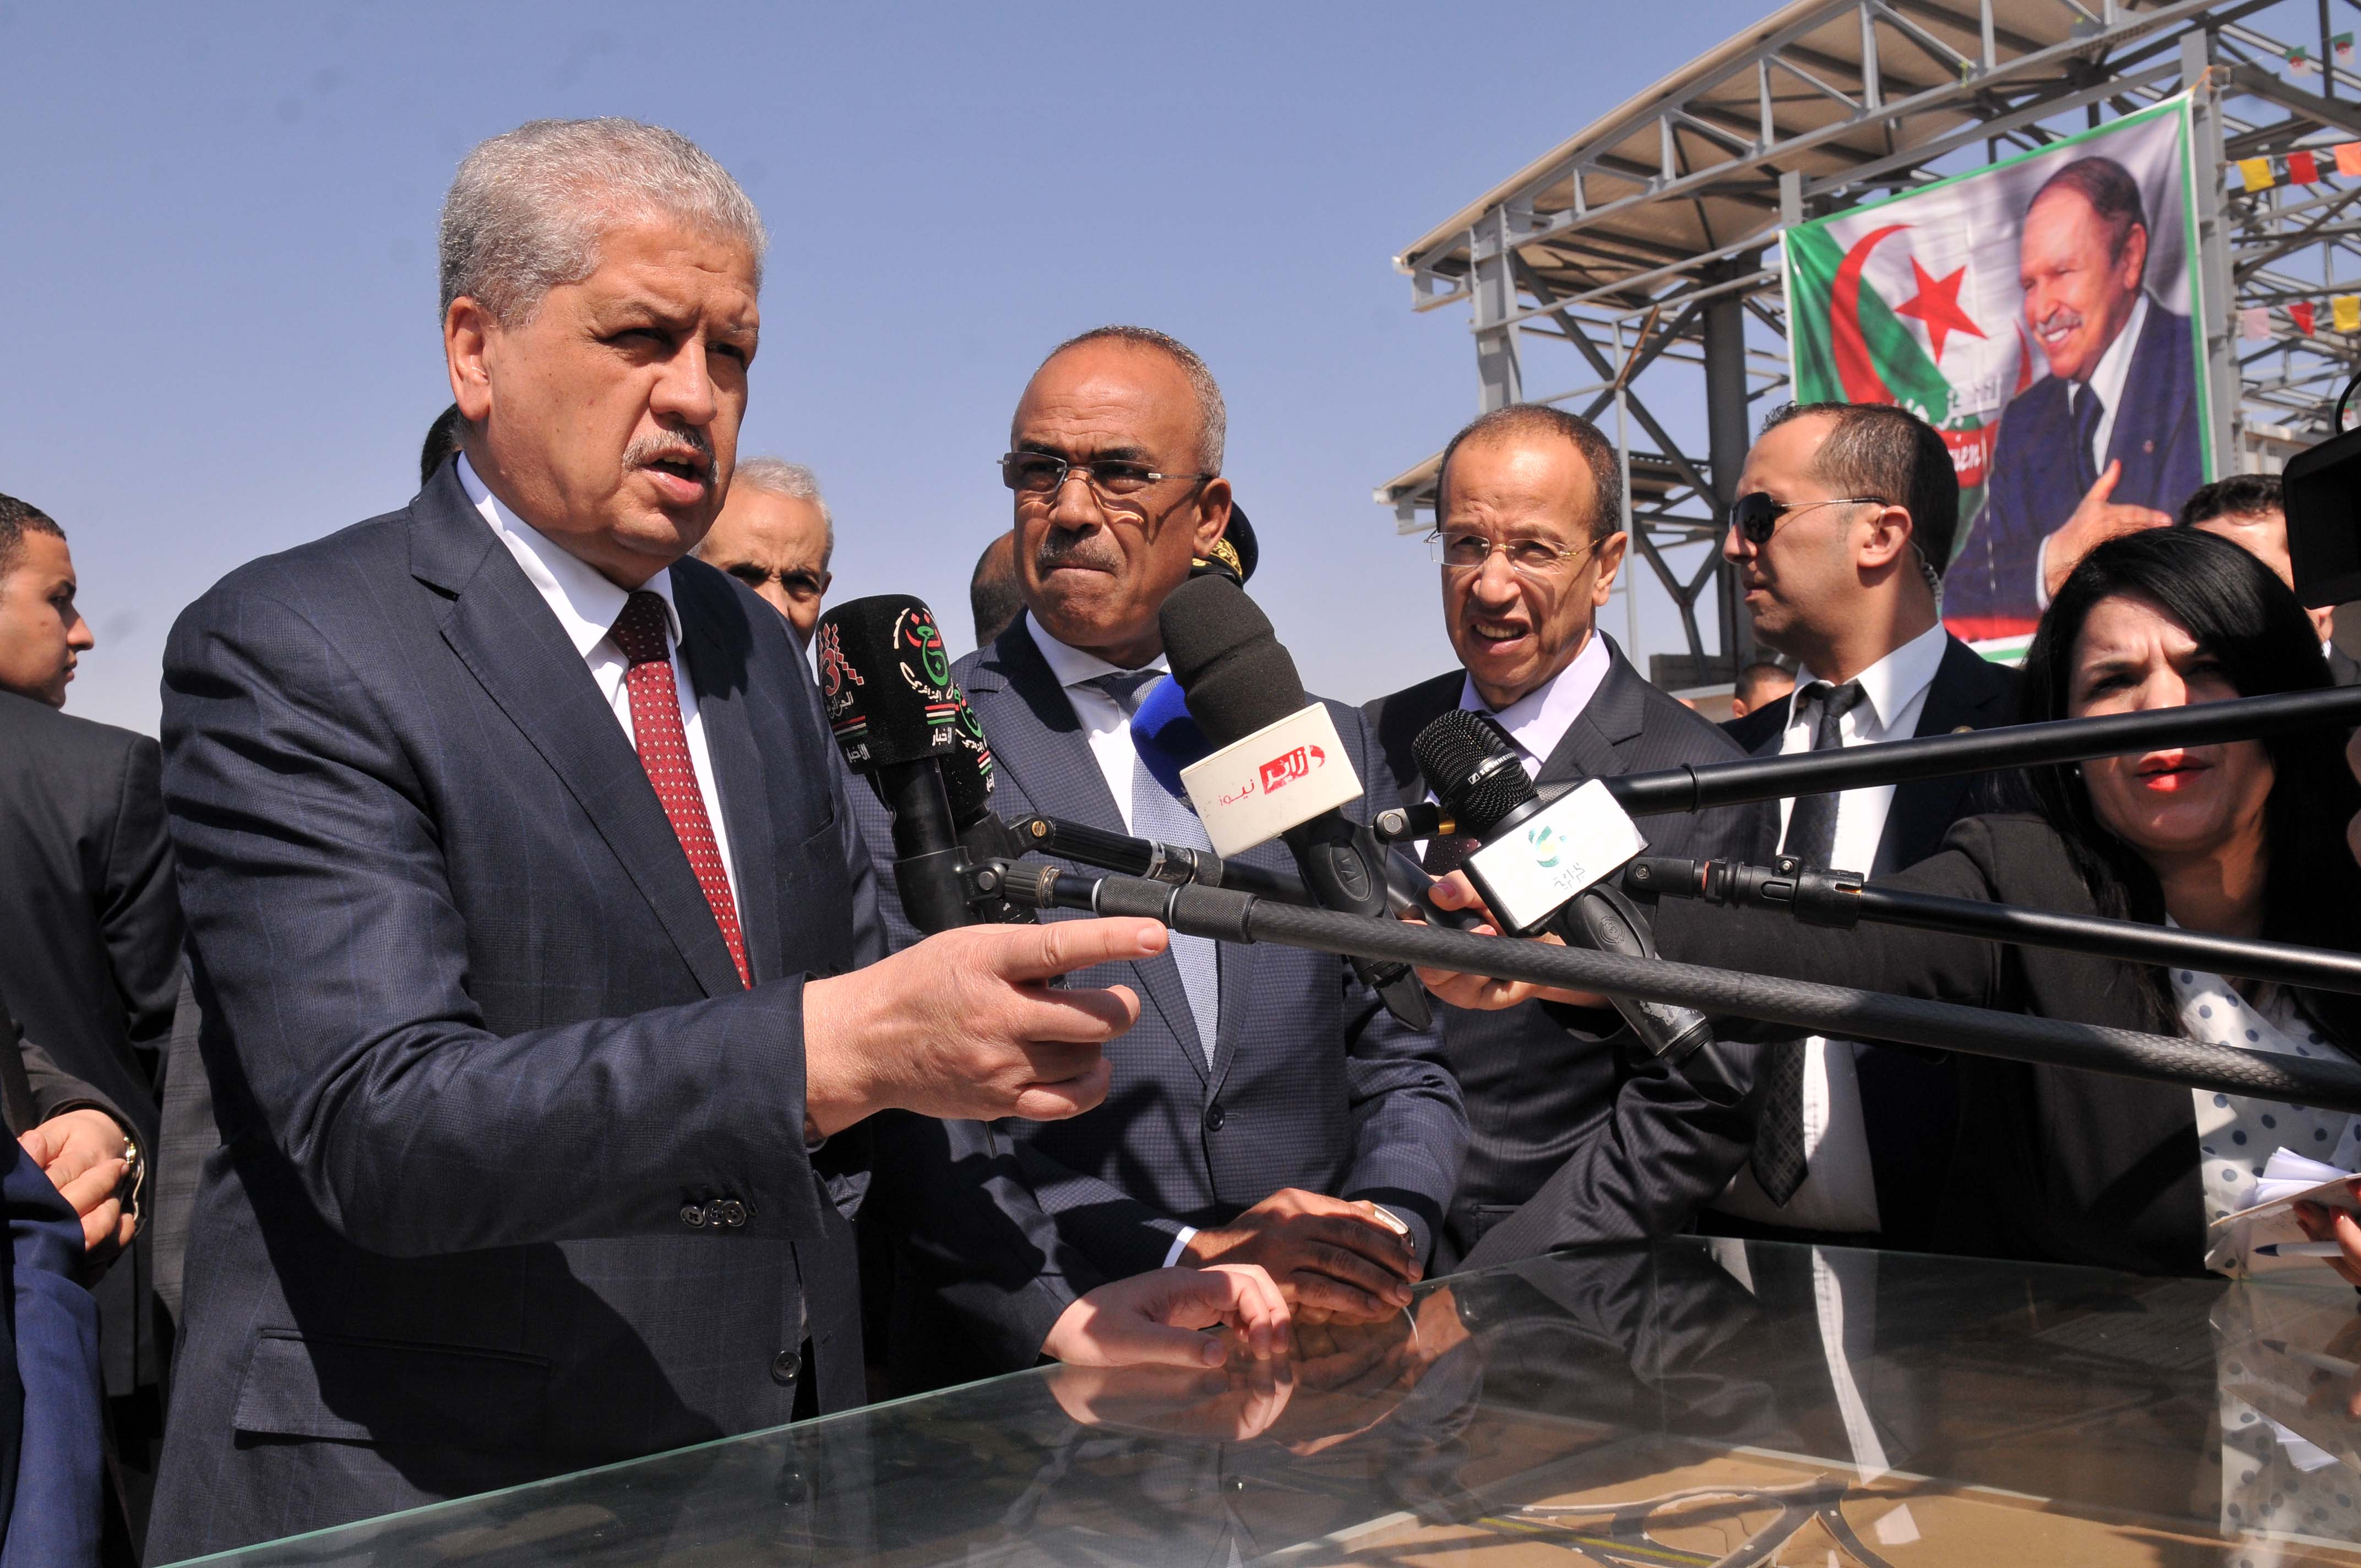 Le Premier ministre Abdelmalek Sellal dernièrement à Djelfa. New Press